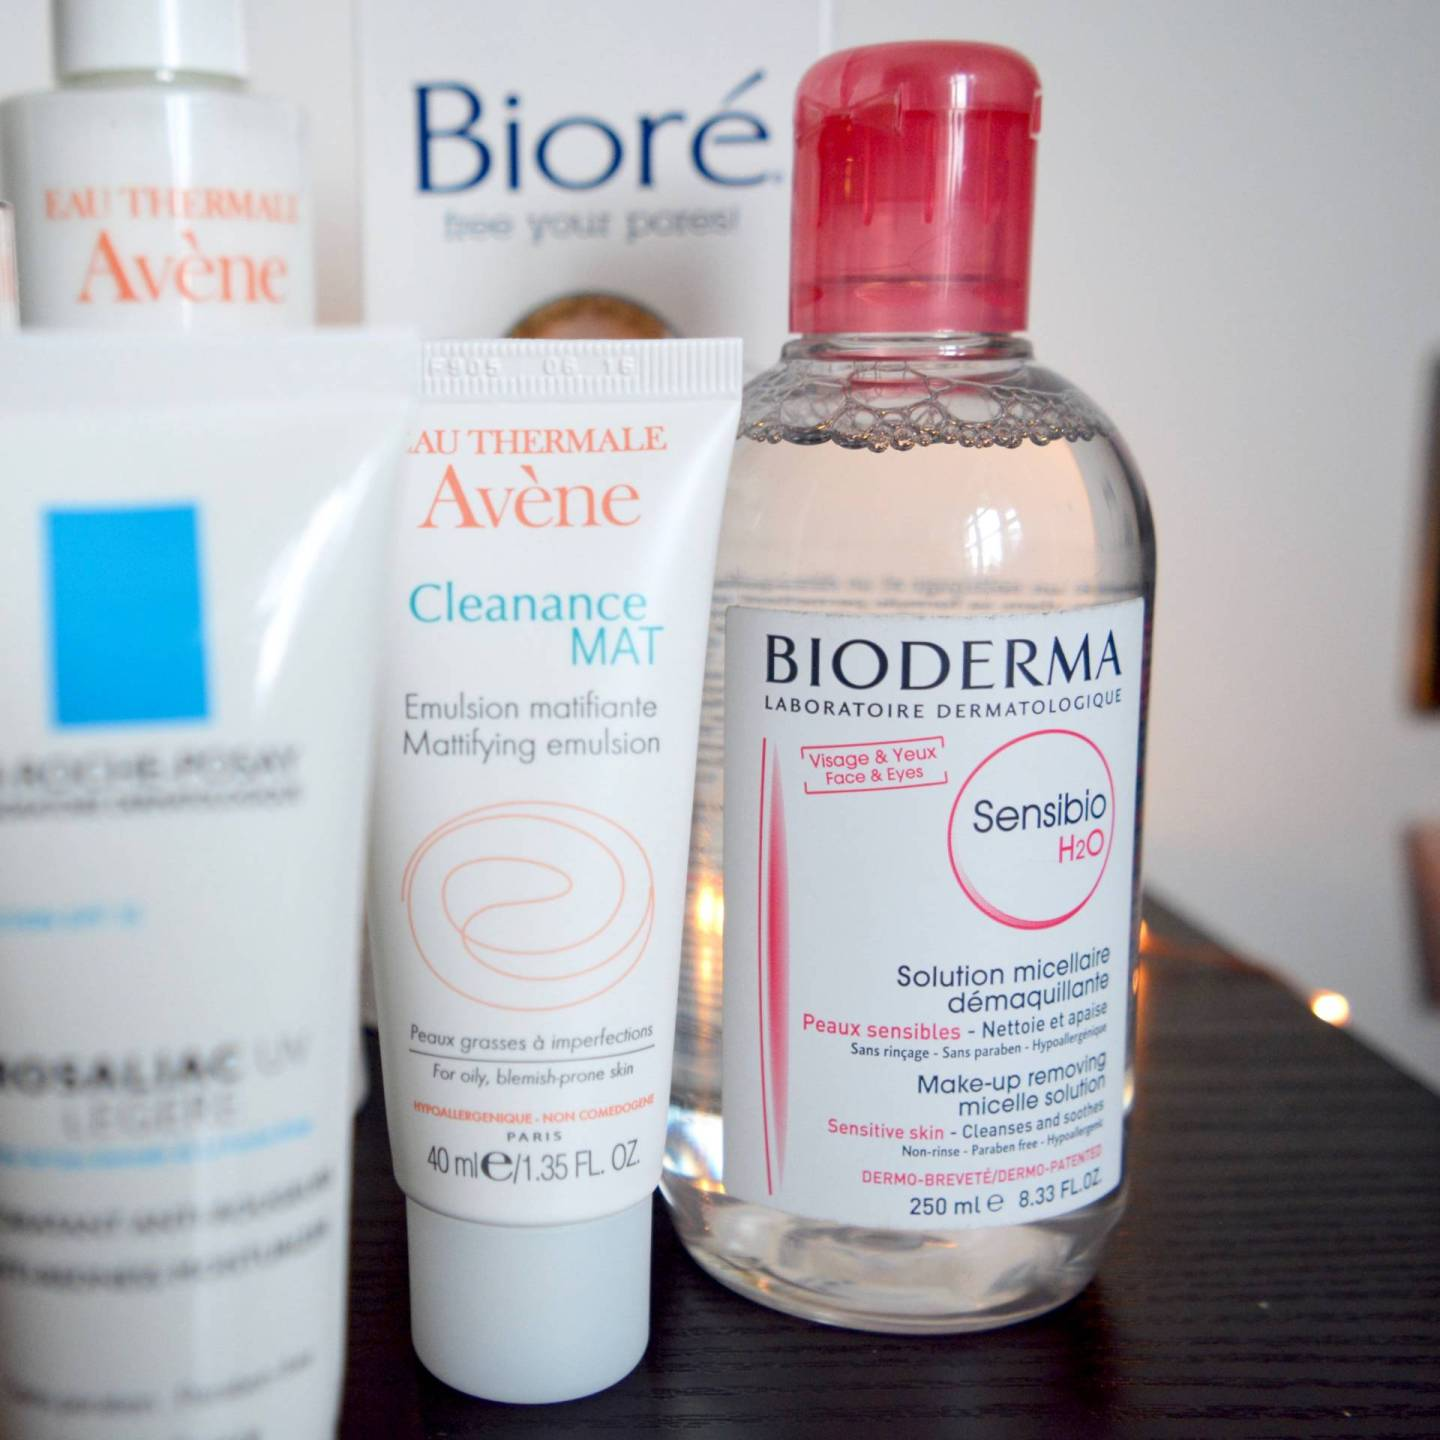 Find Your Skincare Favourite With Boots UK - If you're looking for products for sensitive skin then Bioderma, Avene and La Roche Posay are a great place to start